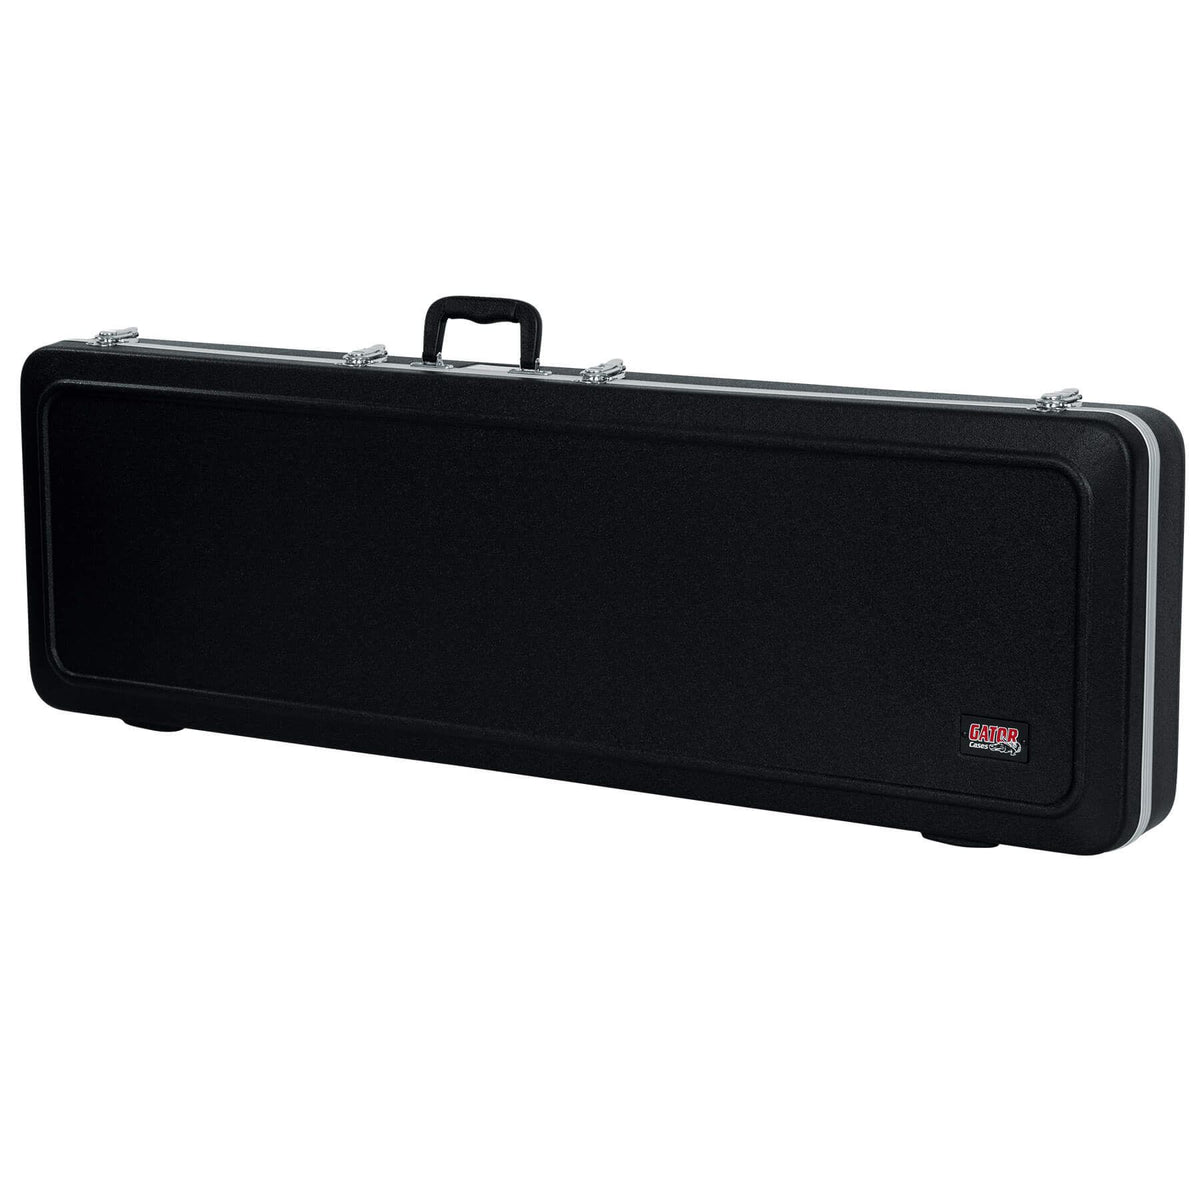 Gator Bass Guitar Case fits Fender American Standard Jazz Bass V